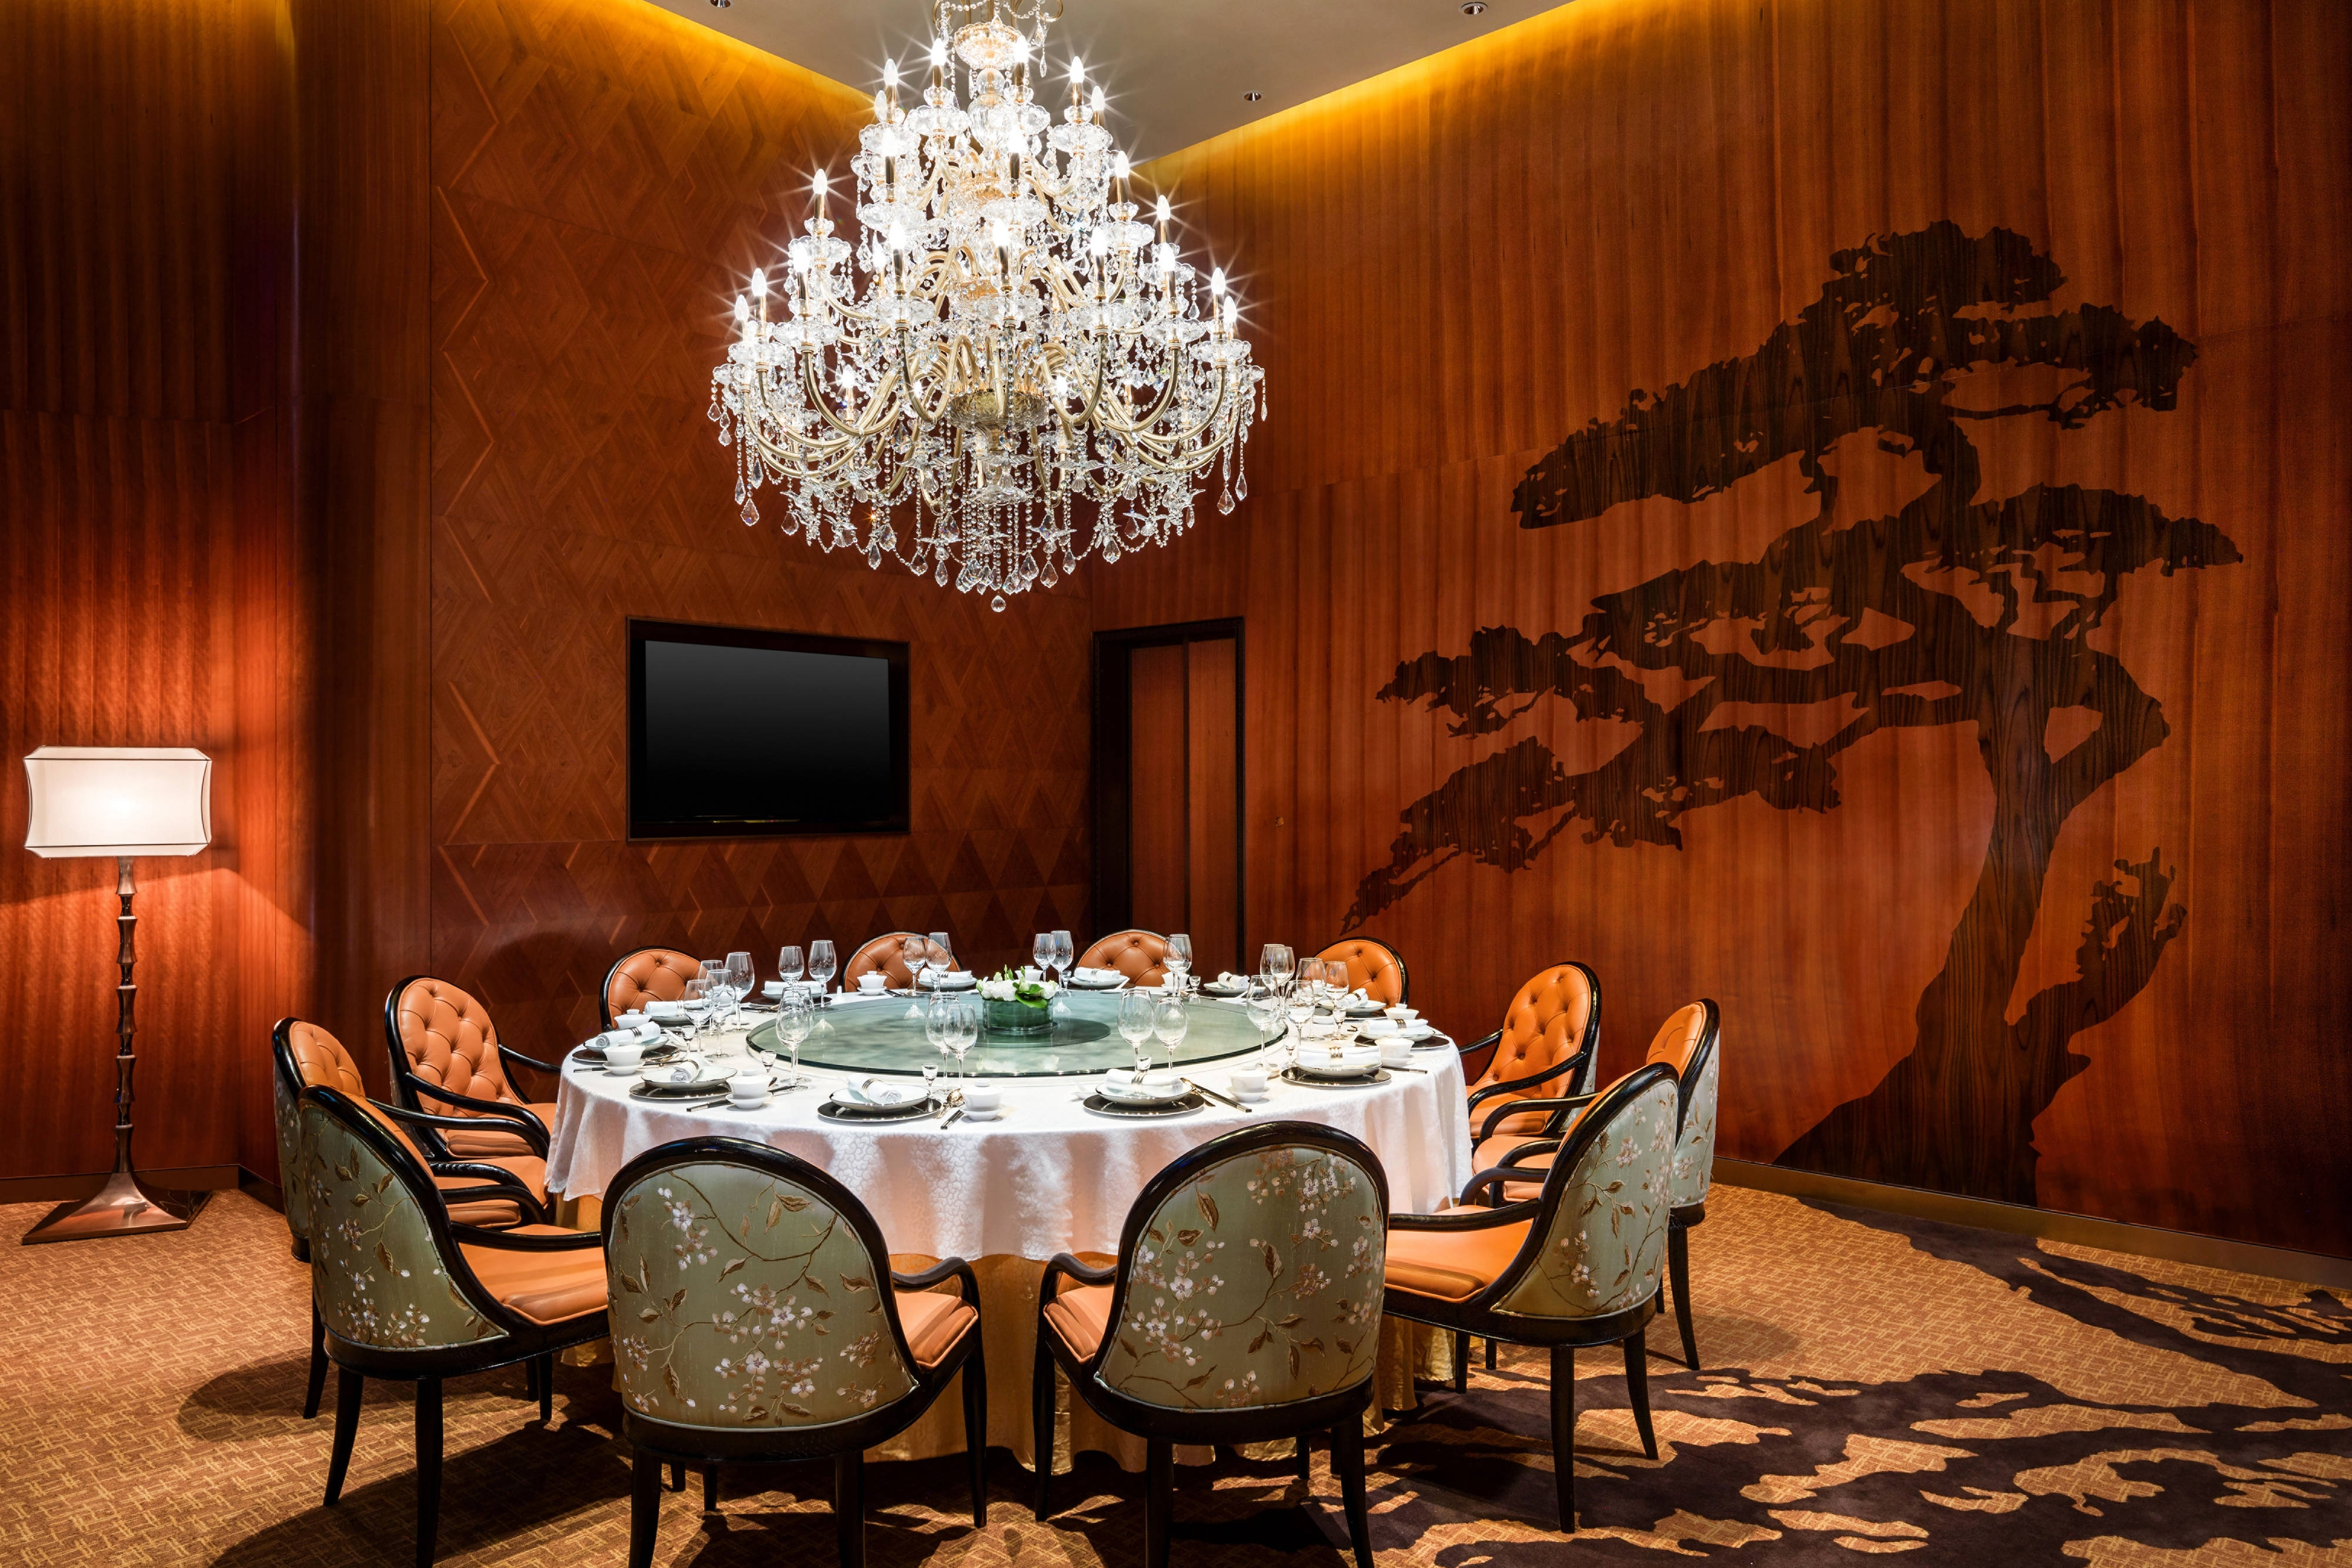 Yan Ting Private Dining Room